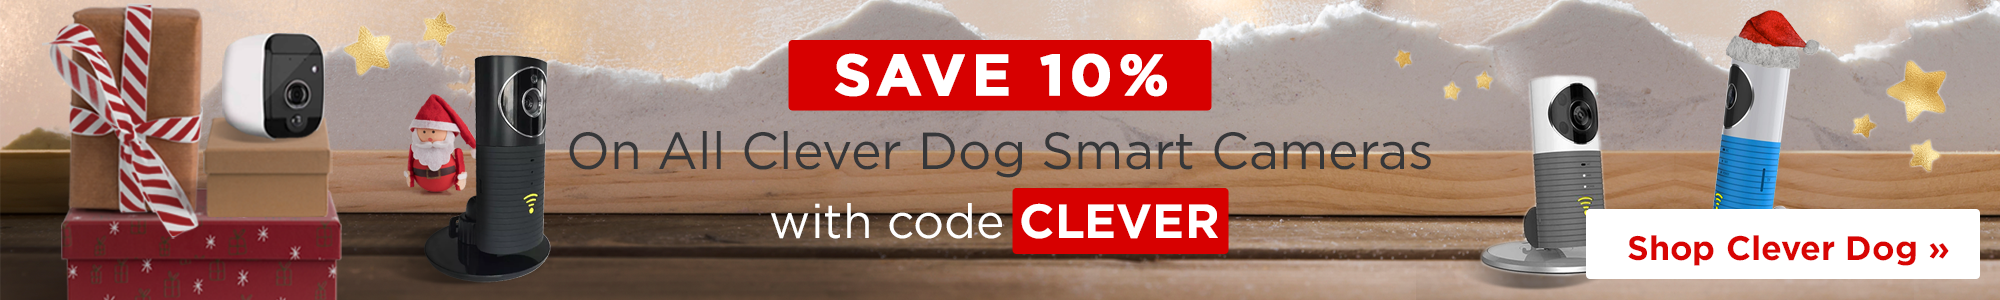 Save 10% on all Clever Dog with code CLEVER